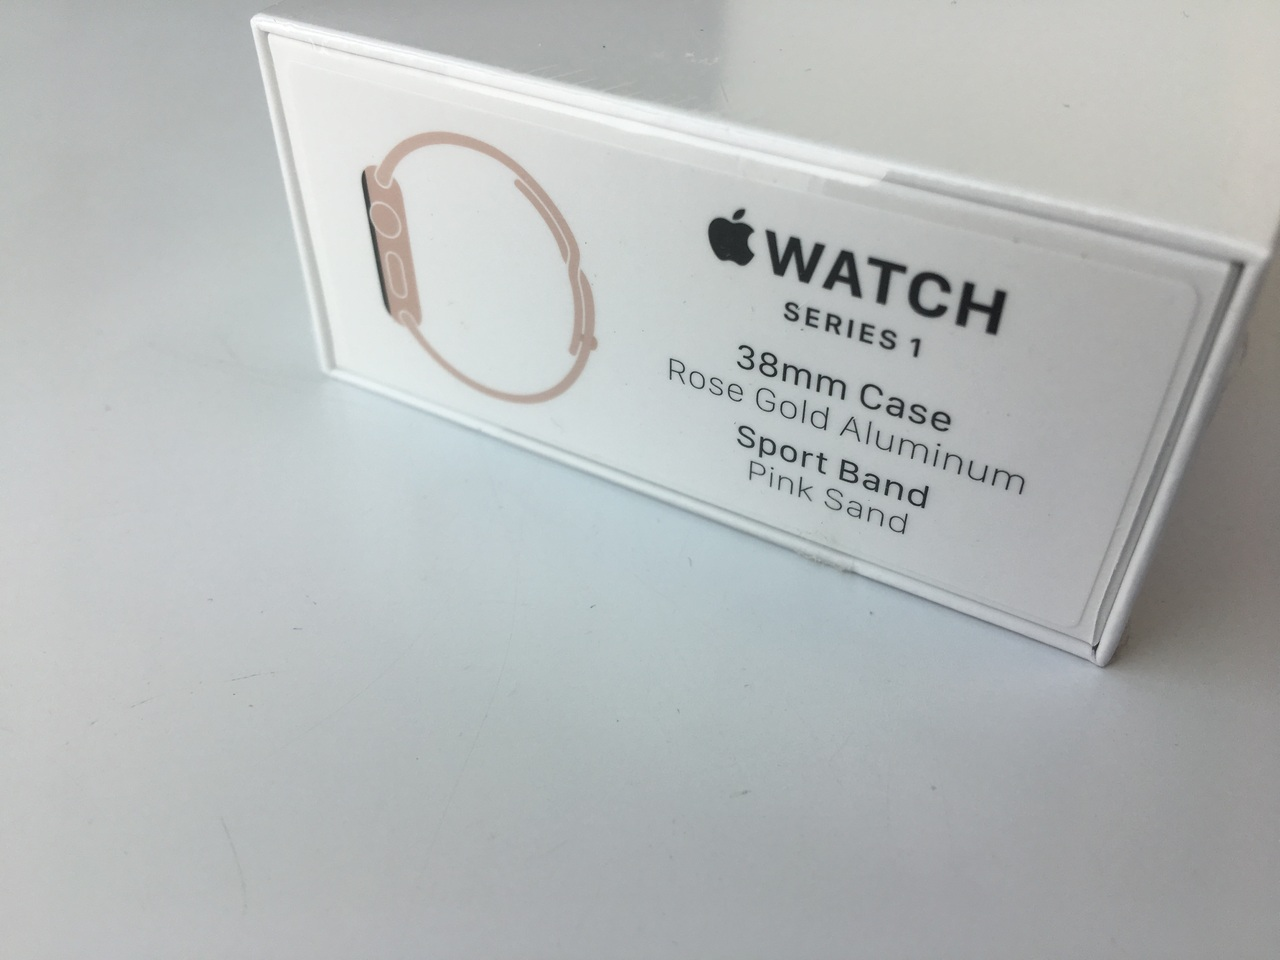 Apple Watch Rose Gold Aluminum Case With Pink Sand Sport Band 38mm 2 Series 1